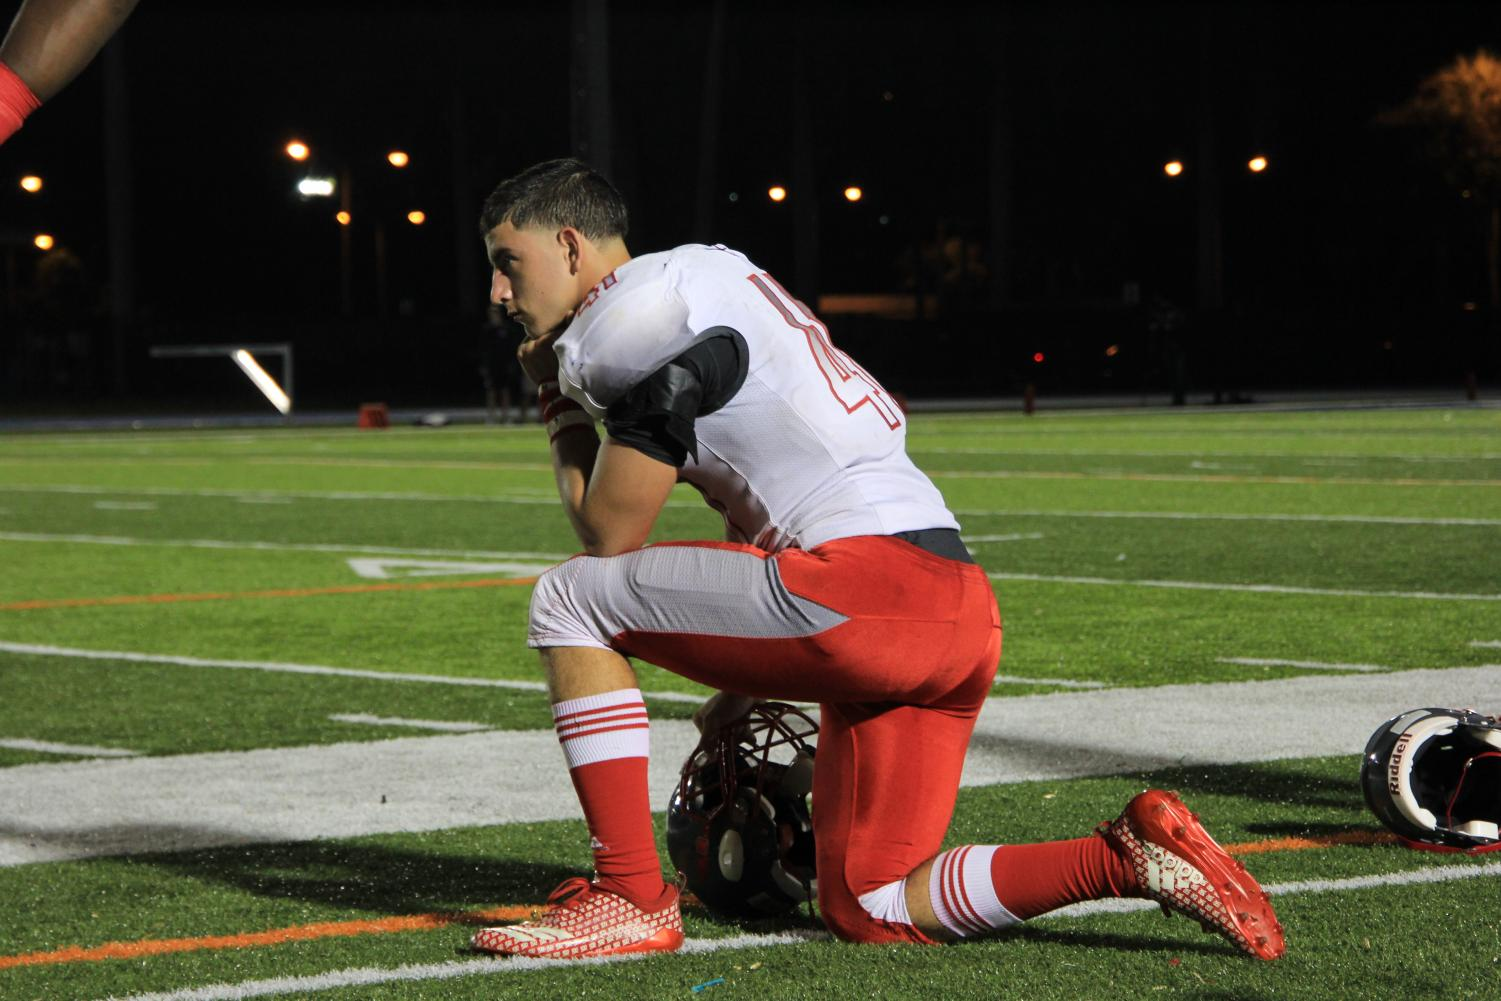 A+resting+football+player+observes+the+field+as+his+teammates+play+against+their+rival%2C+the+Columbus+Explorers.++